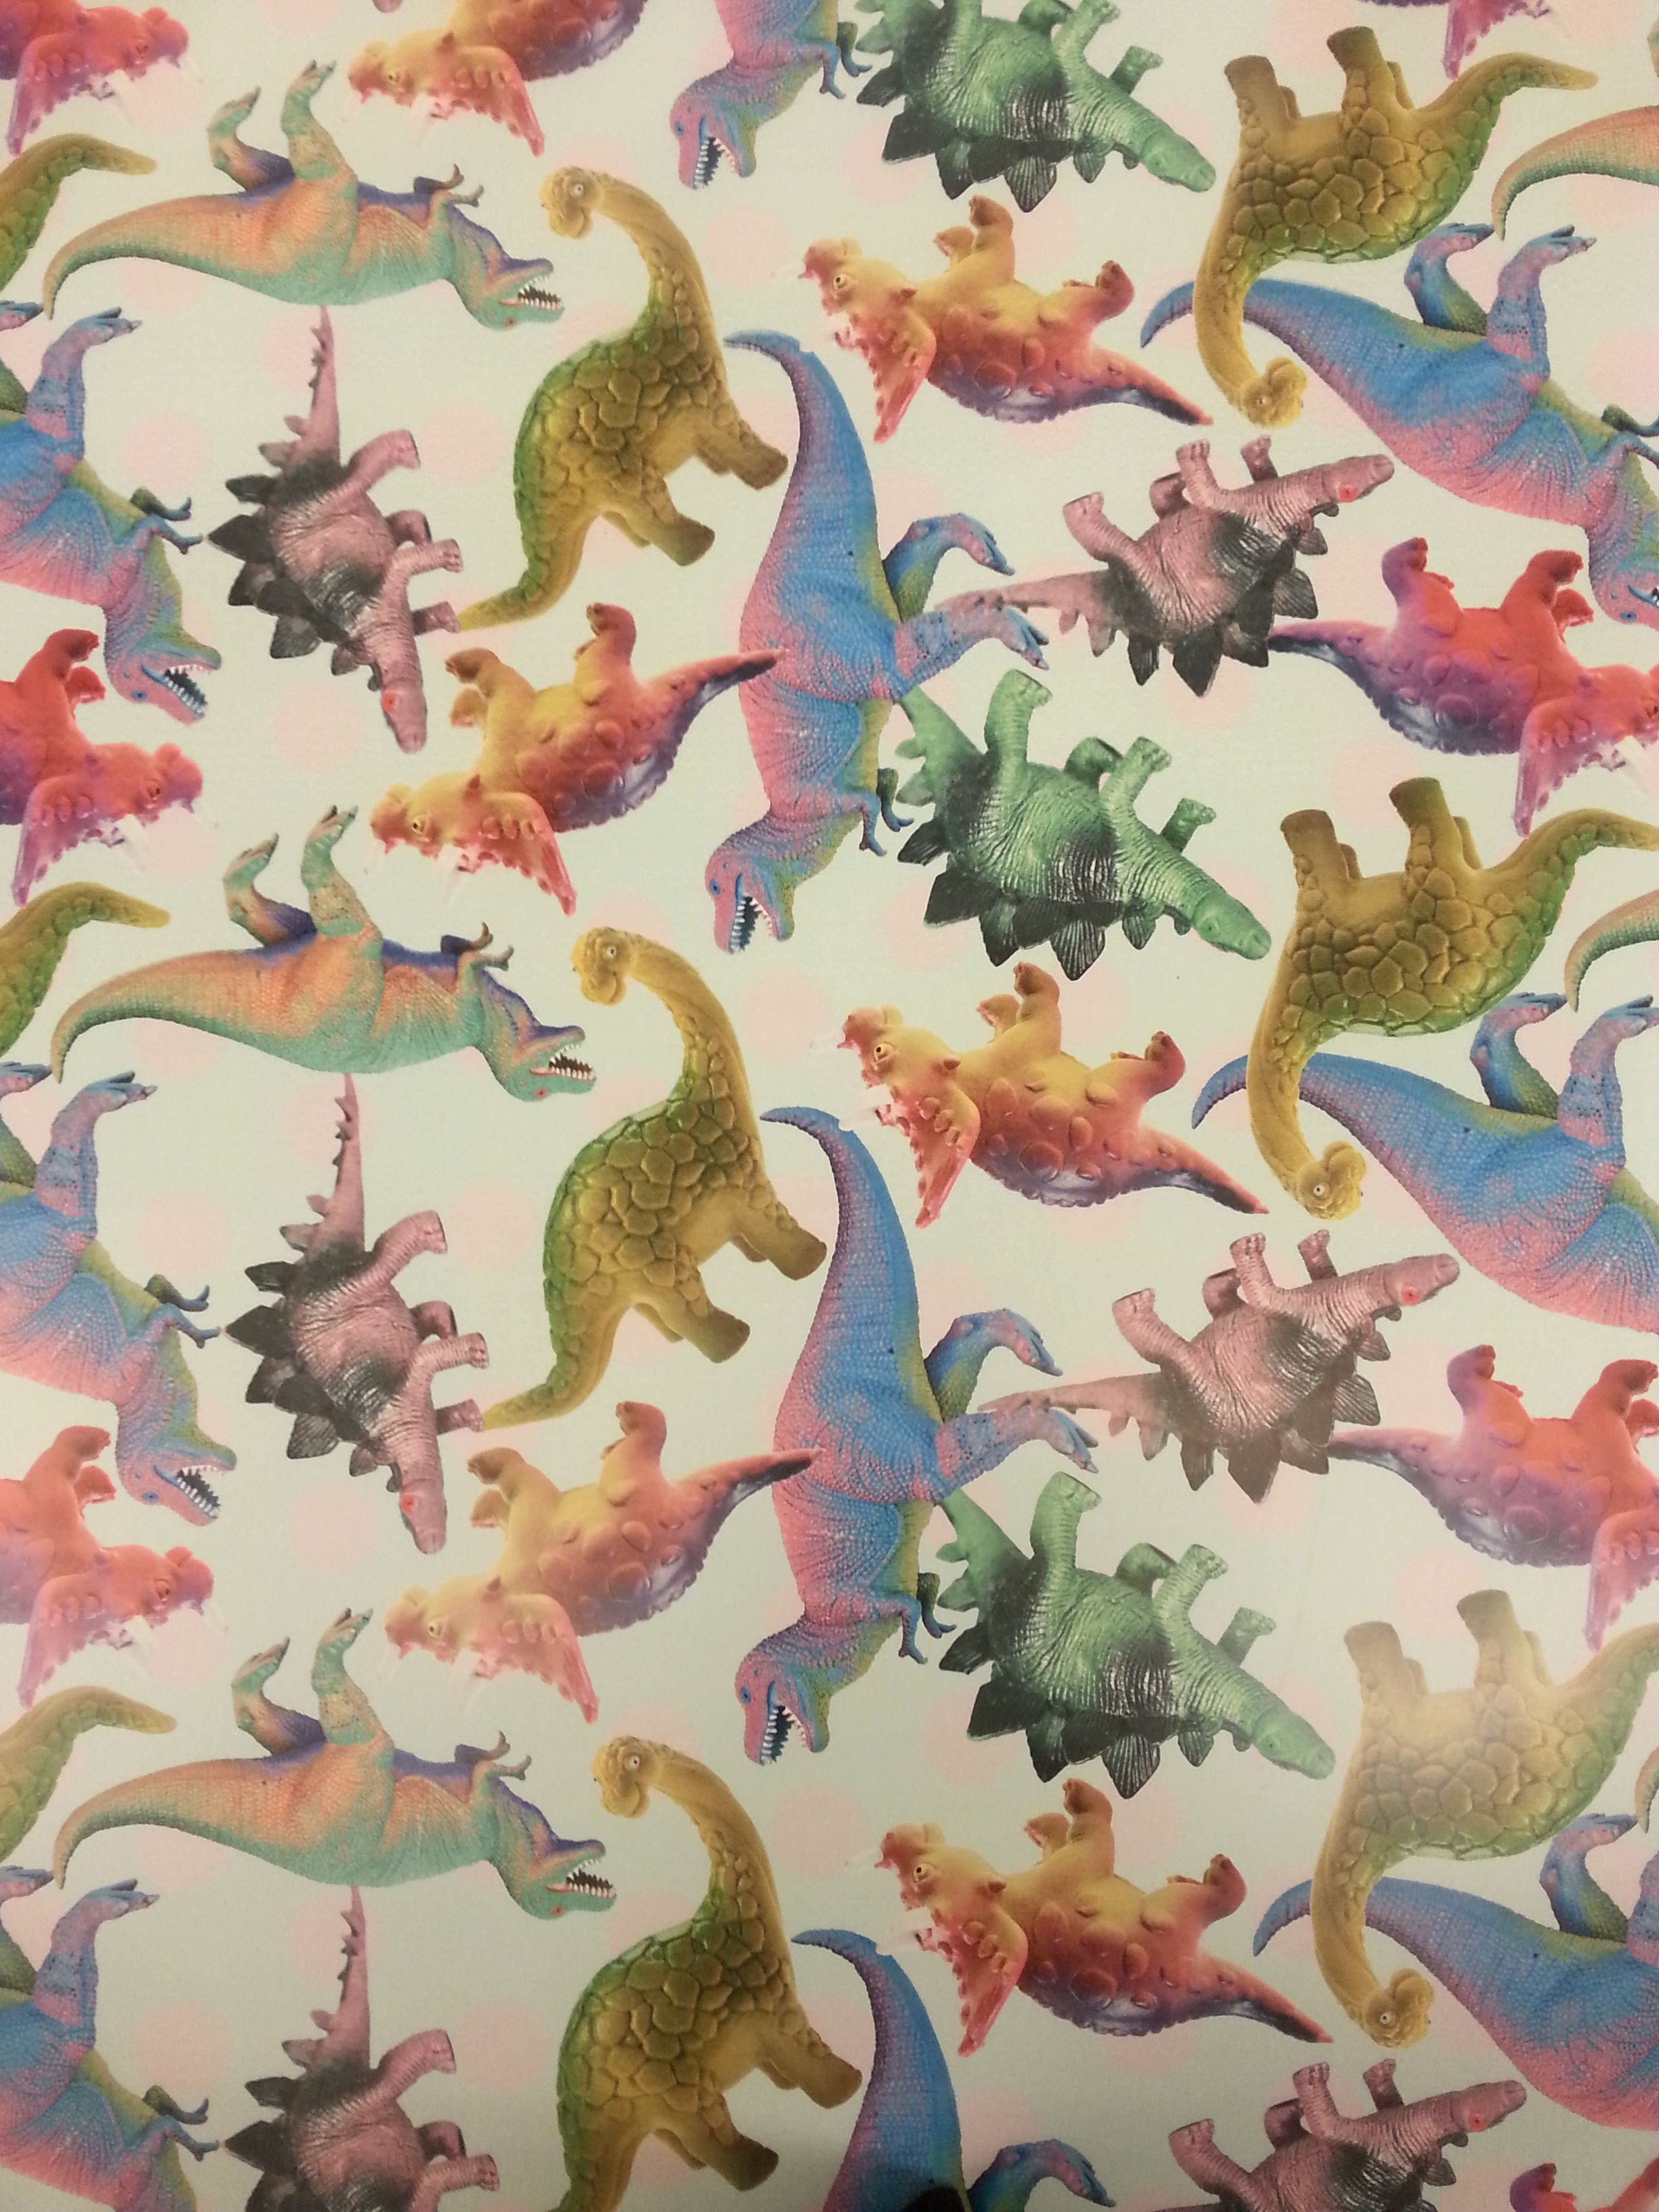 Pin By Hairpik Creative On Wall Treatments Dinosaur Wallpaper Dinosaur Posters Dinosaur Background